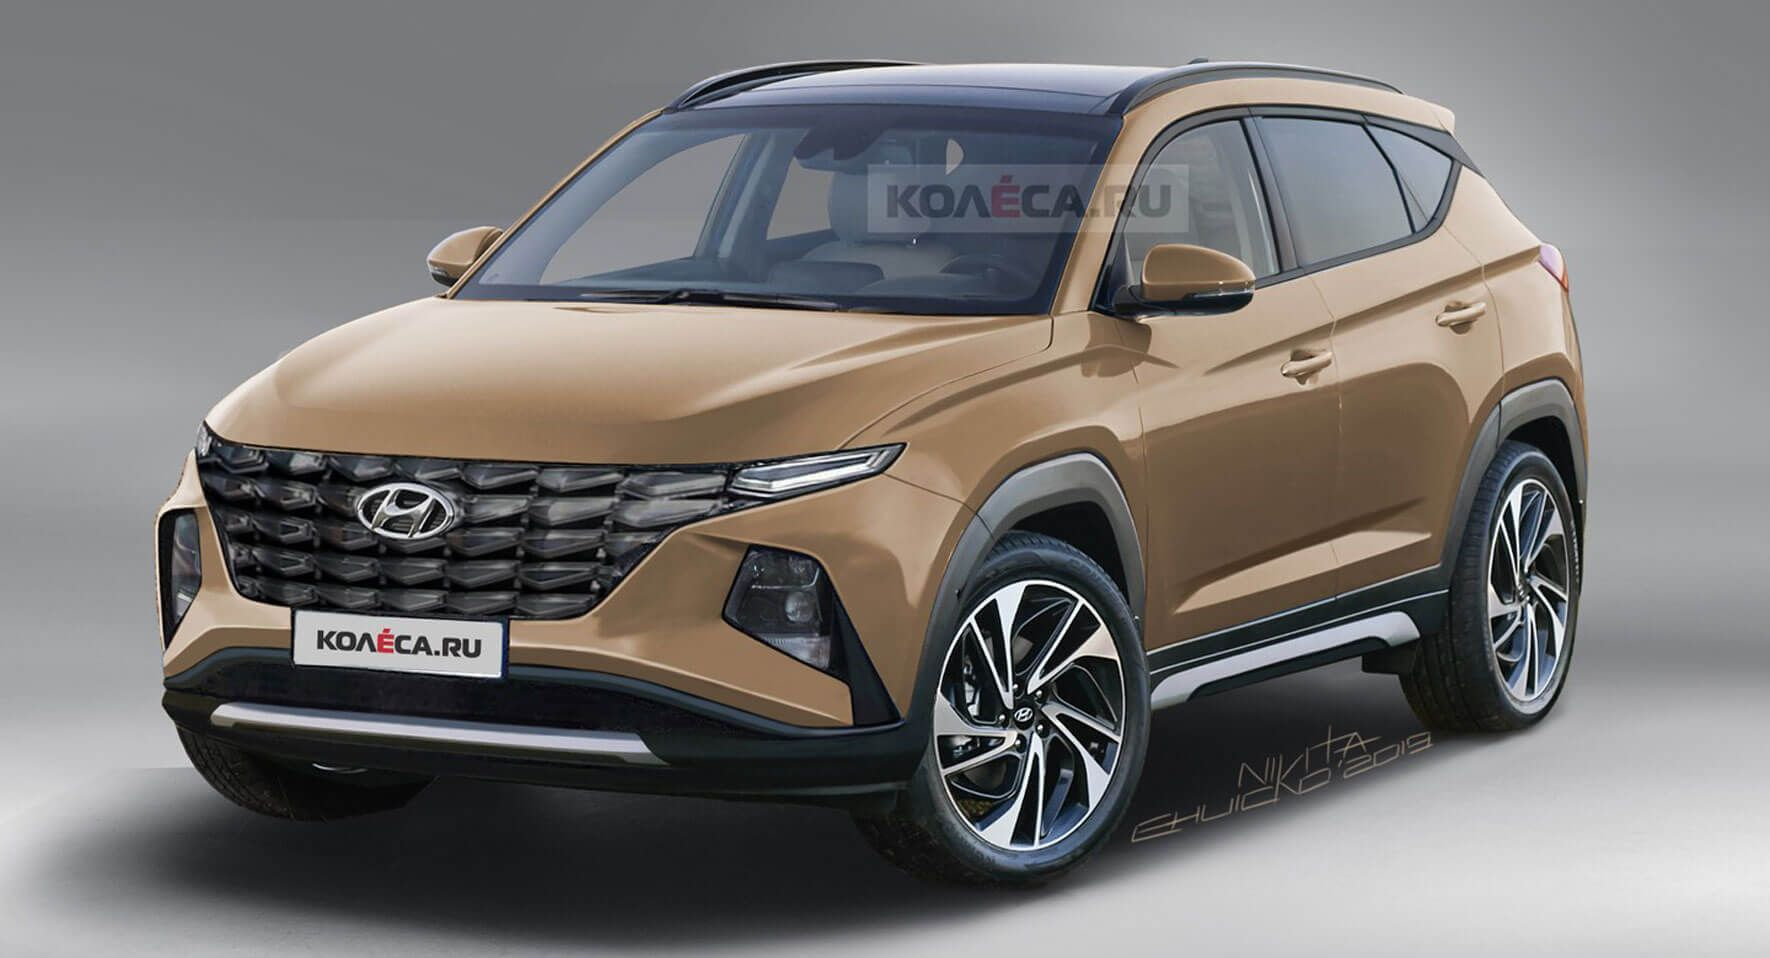 2021 Hyundai Tucson Here S A More Refined And Accurate Take On The Next Gen Model Hybrids Hyundai Hyundaitucson Renderi Hyundai Tucson New Hyundai Hyundai